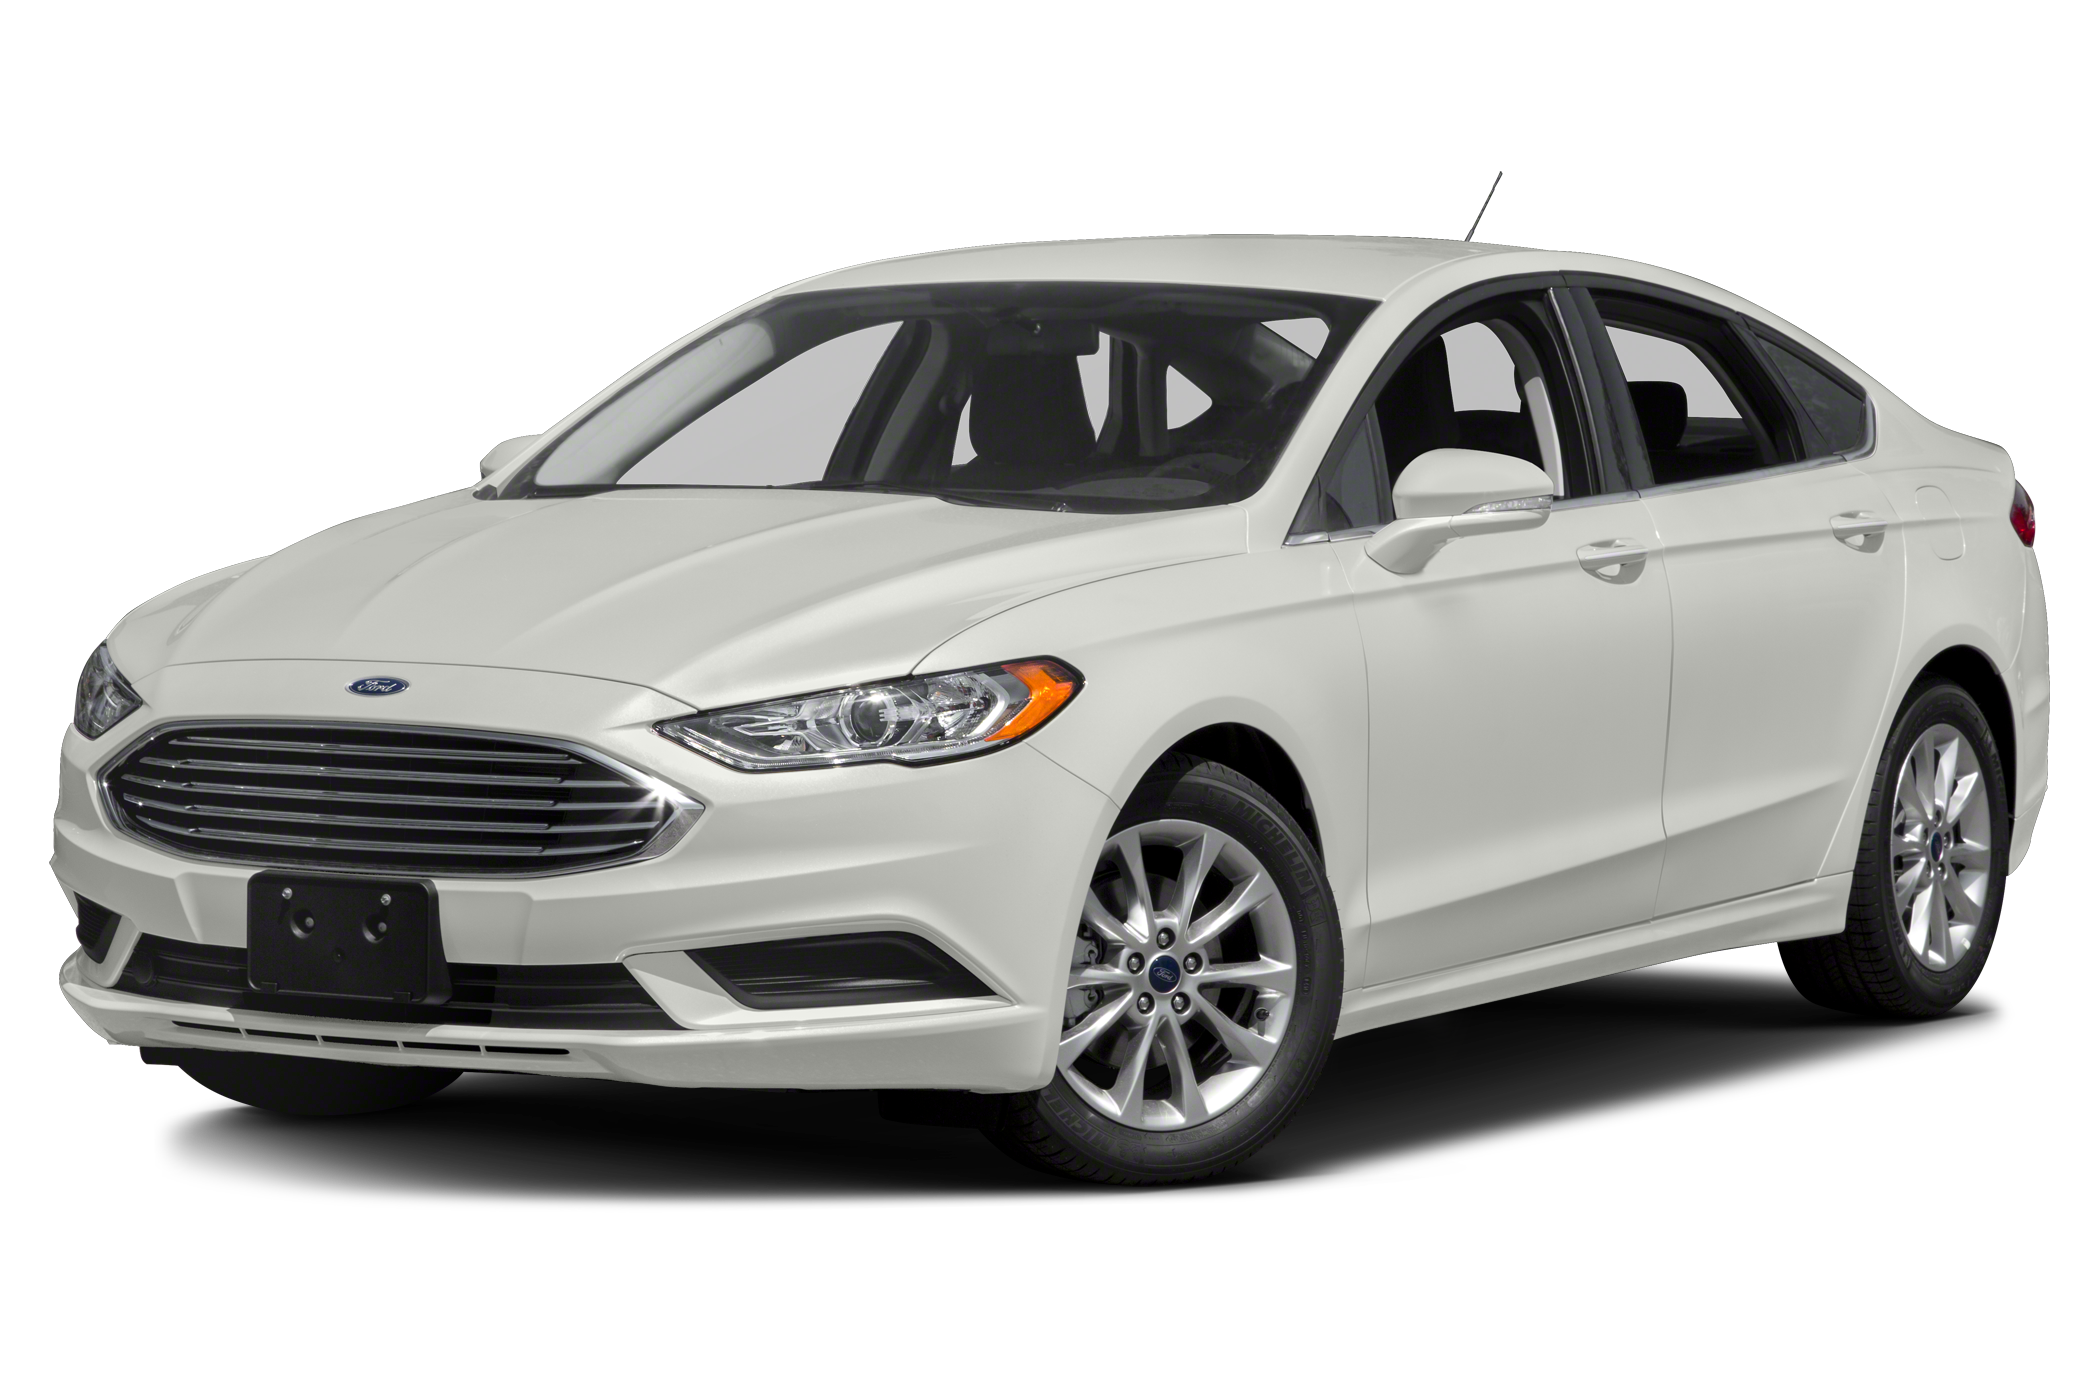 pare Ford Fusion to Lincoln Mkz